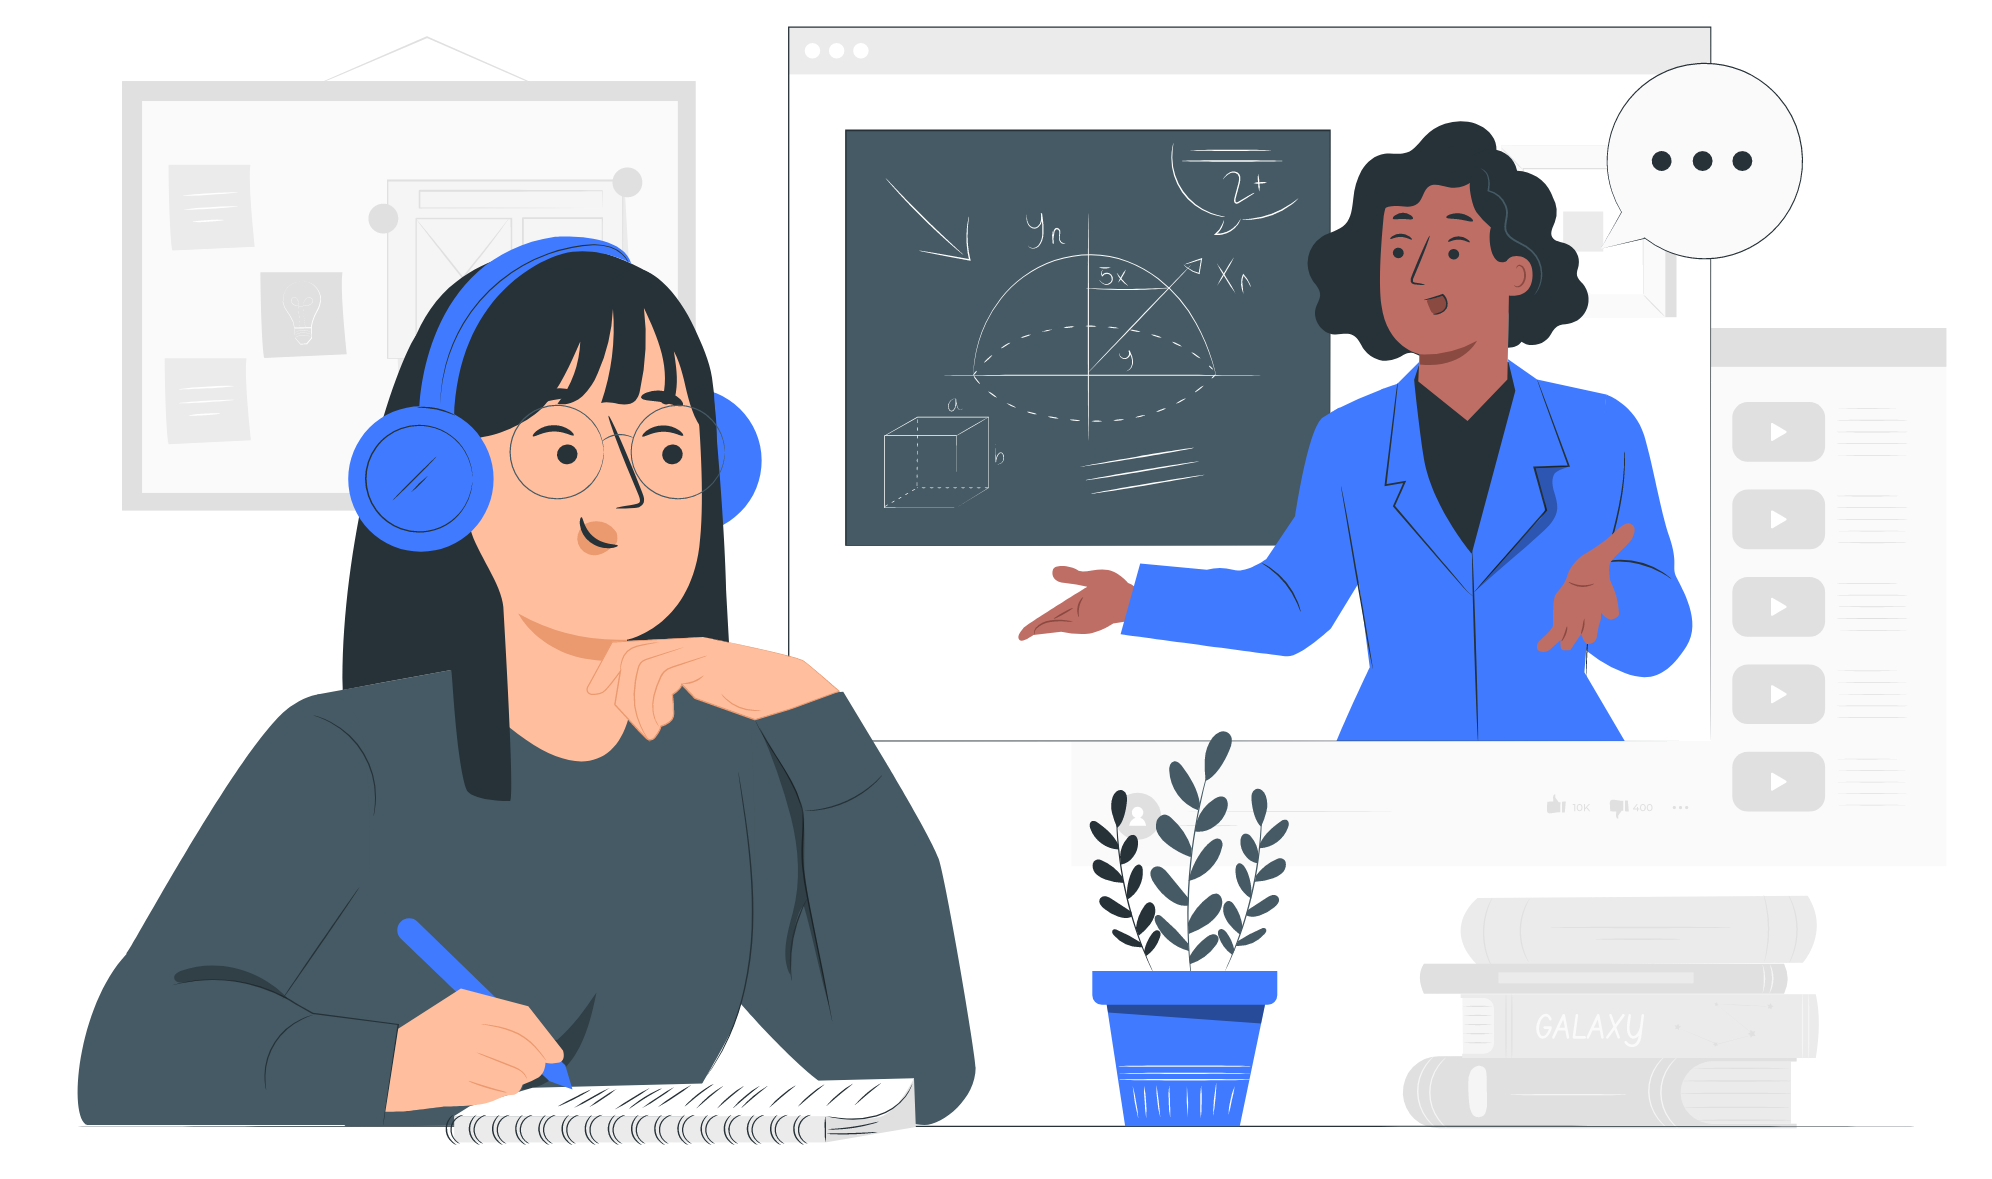 An illustration of a lady learning online